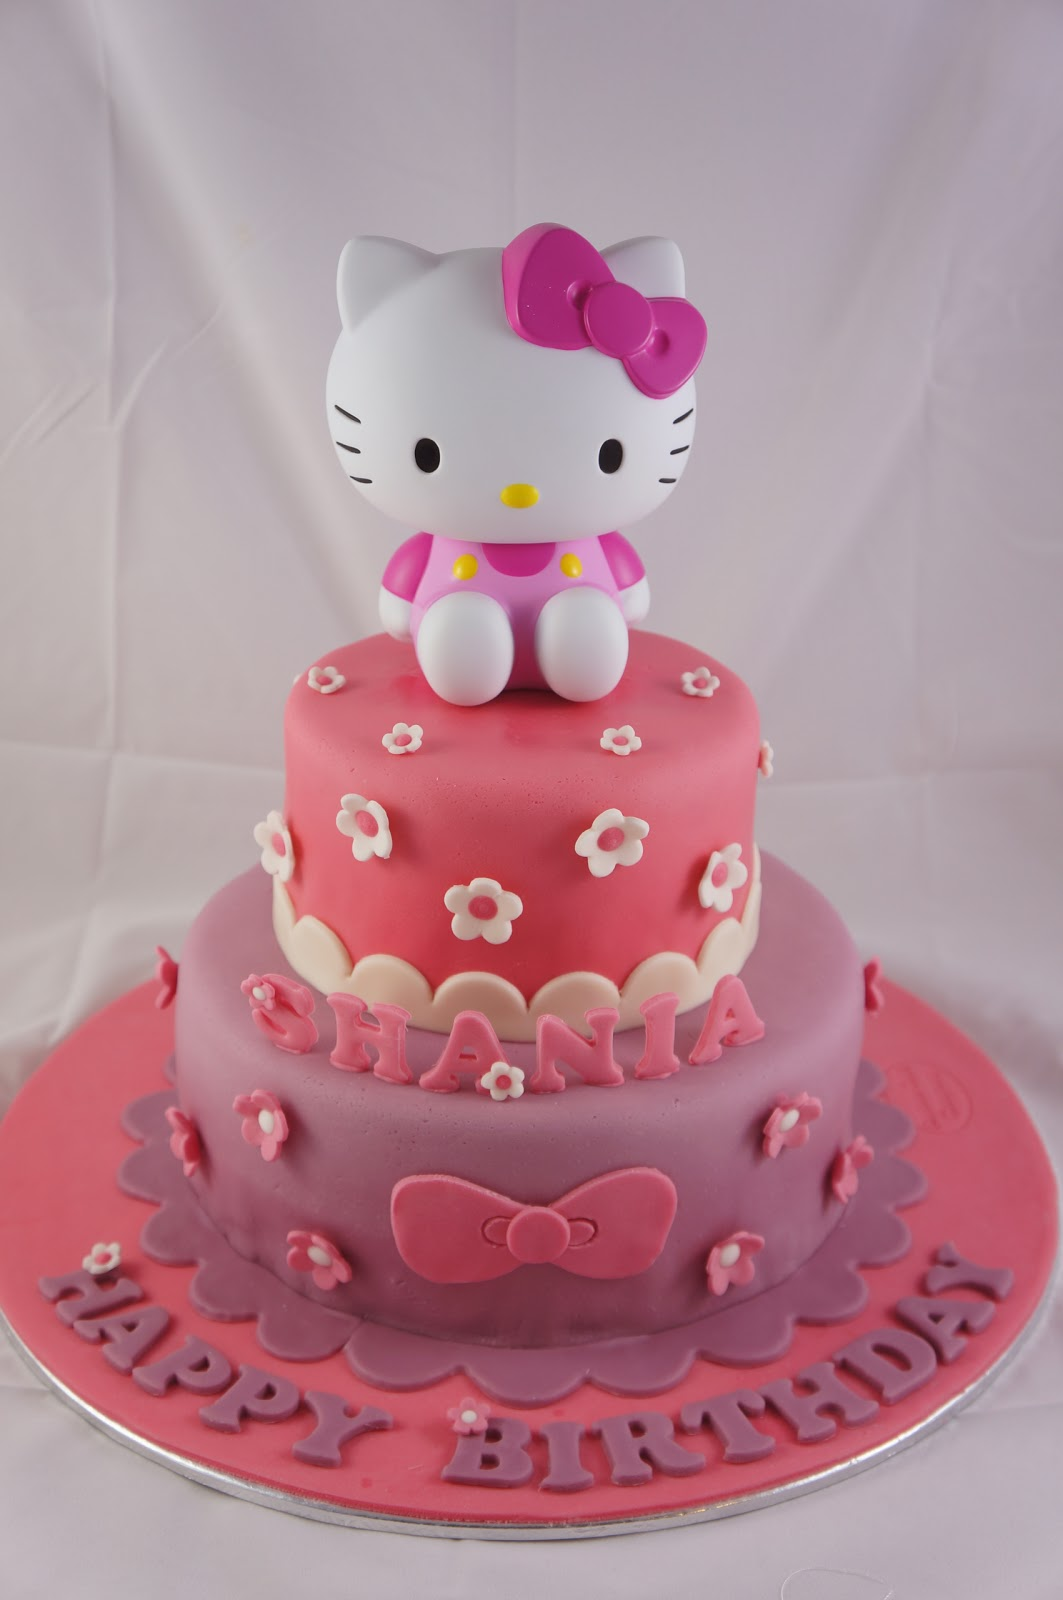 Images Of A Hello Kitty Cake : Joyous Cake Company: Hello Kitty pink cake